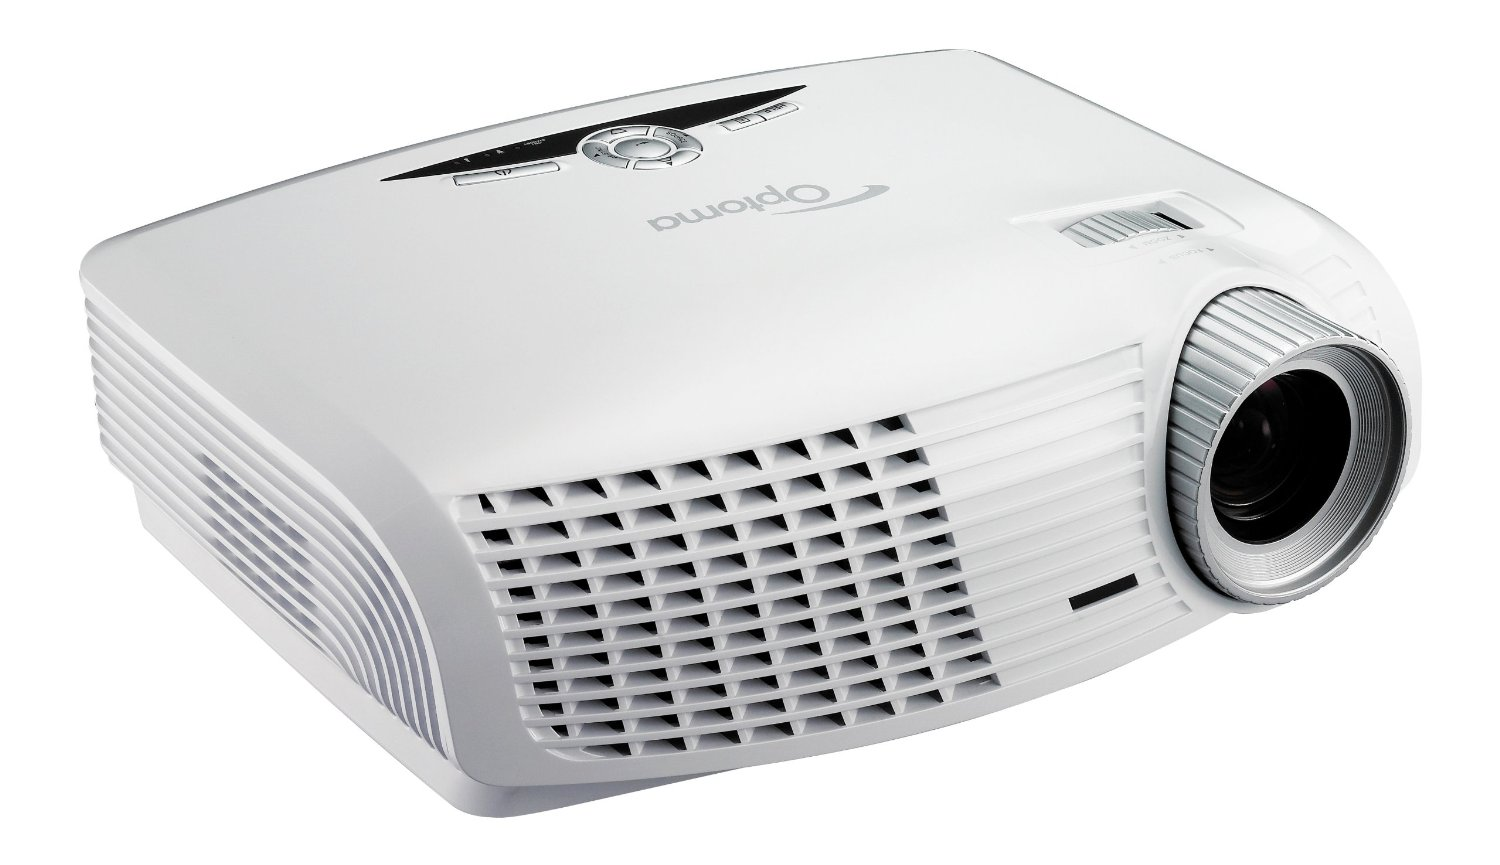 HD25e review,Projector Guide,Best Home Theater Projector